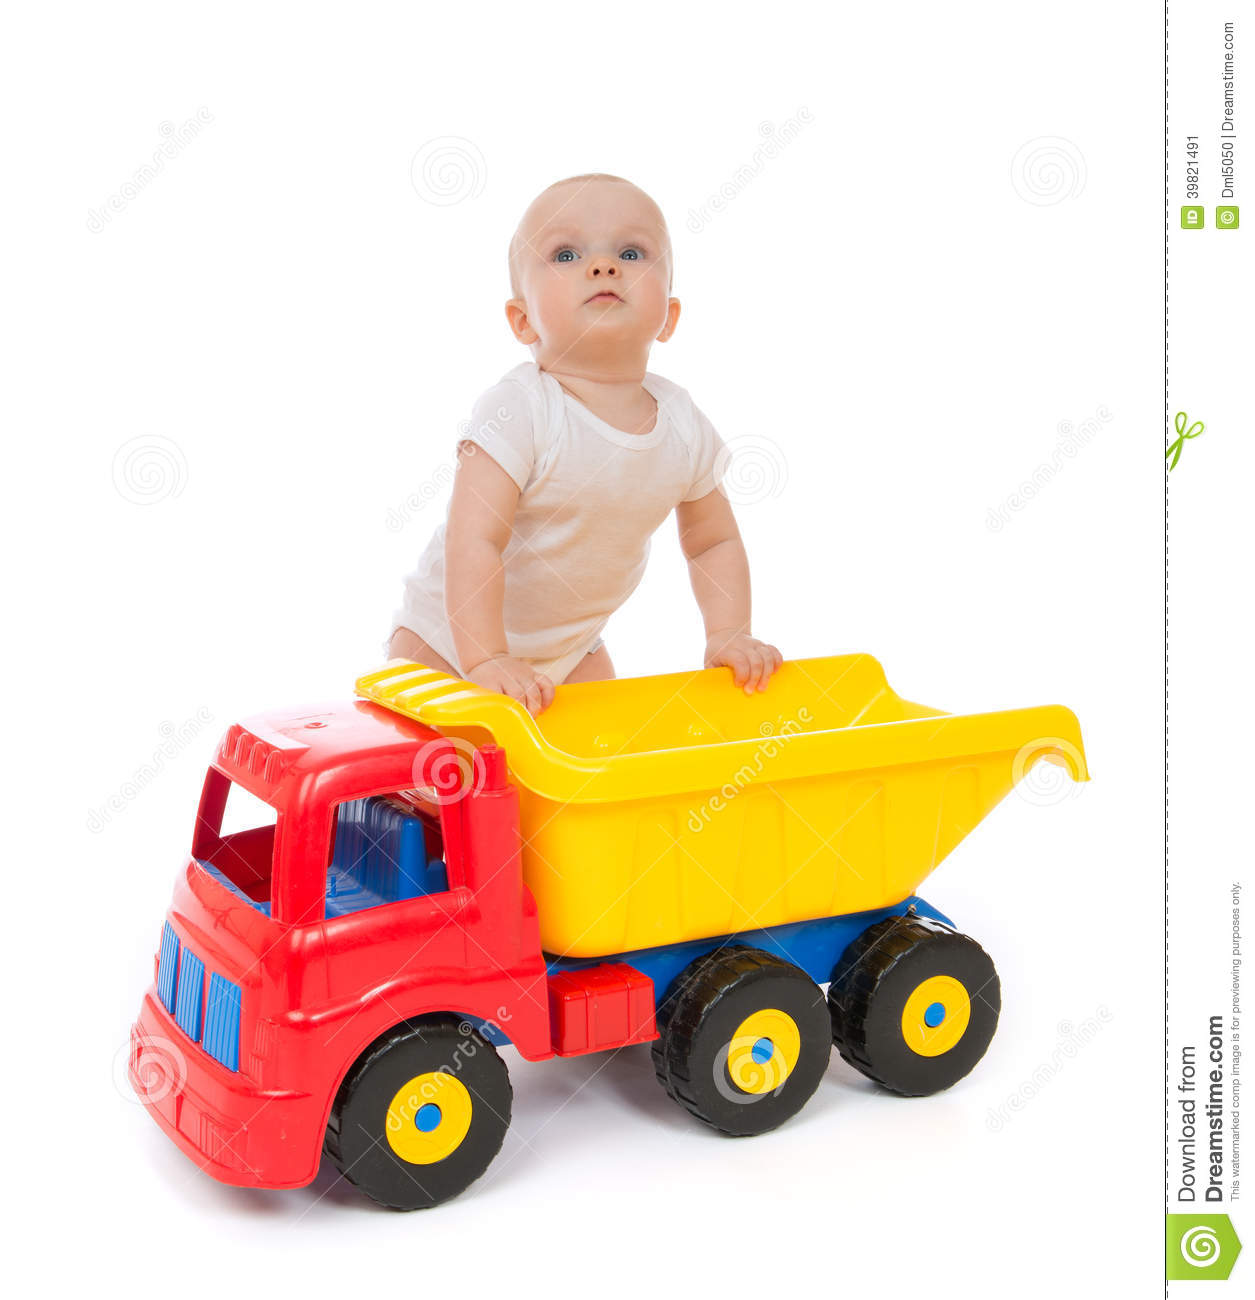 Large Toy Trucks For Boys : Infant child baby boy toddler with big toy car truck stock